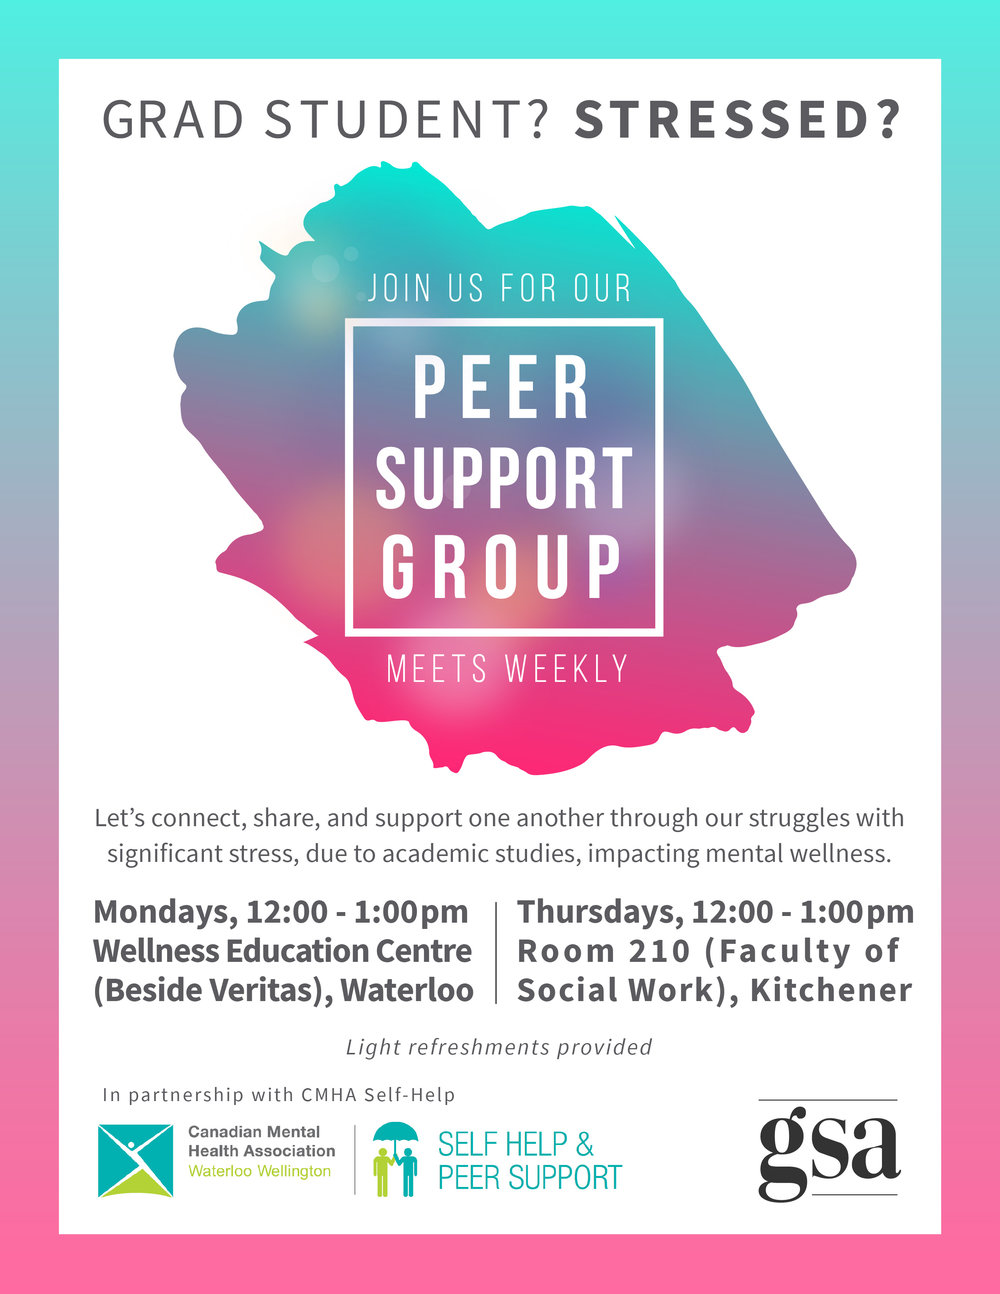 Grad Student? Stressed? Join us for our peer support group! Meets weekly. Let's connect, share, and support one another through our struggles with significant stress, due to academic studies, impacting mental wellness. Mondays 12-1pm in the Wellness Education Centre (Beside Veritas) in Waterloo and Thursdays, 12-1 in Room 210 at the Faculty of Social Work in Kitchener. Light refreshments provided. In partnership with CMHA Self-Help.